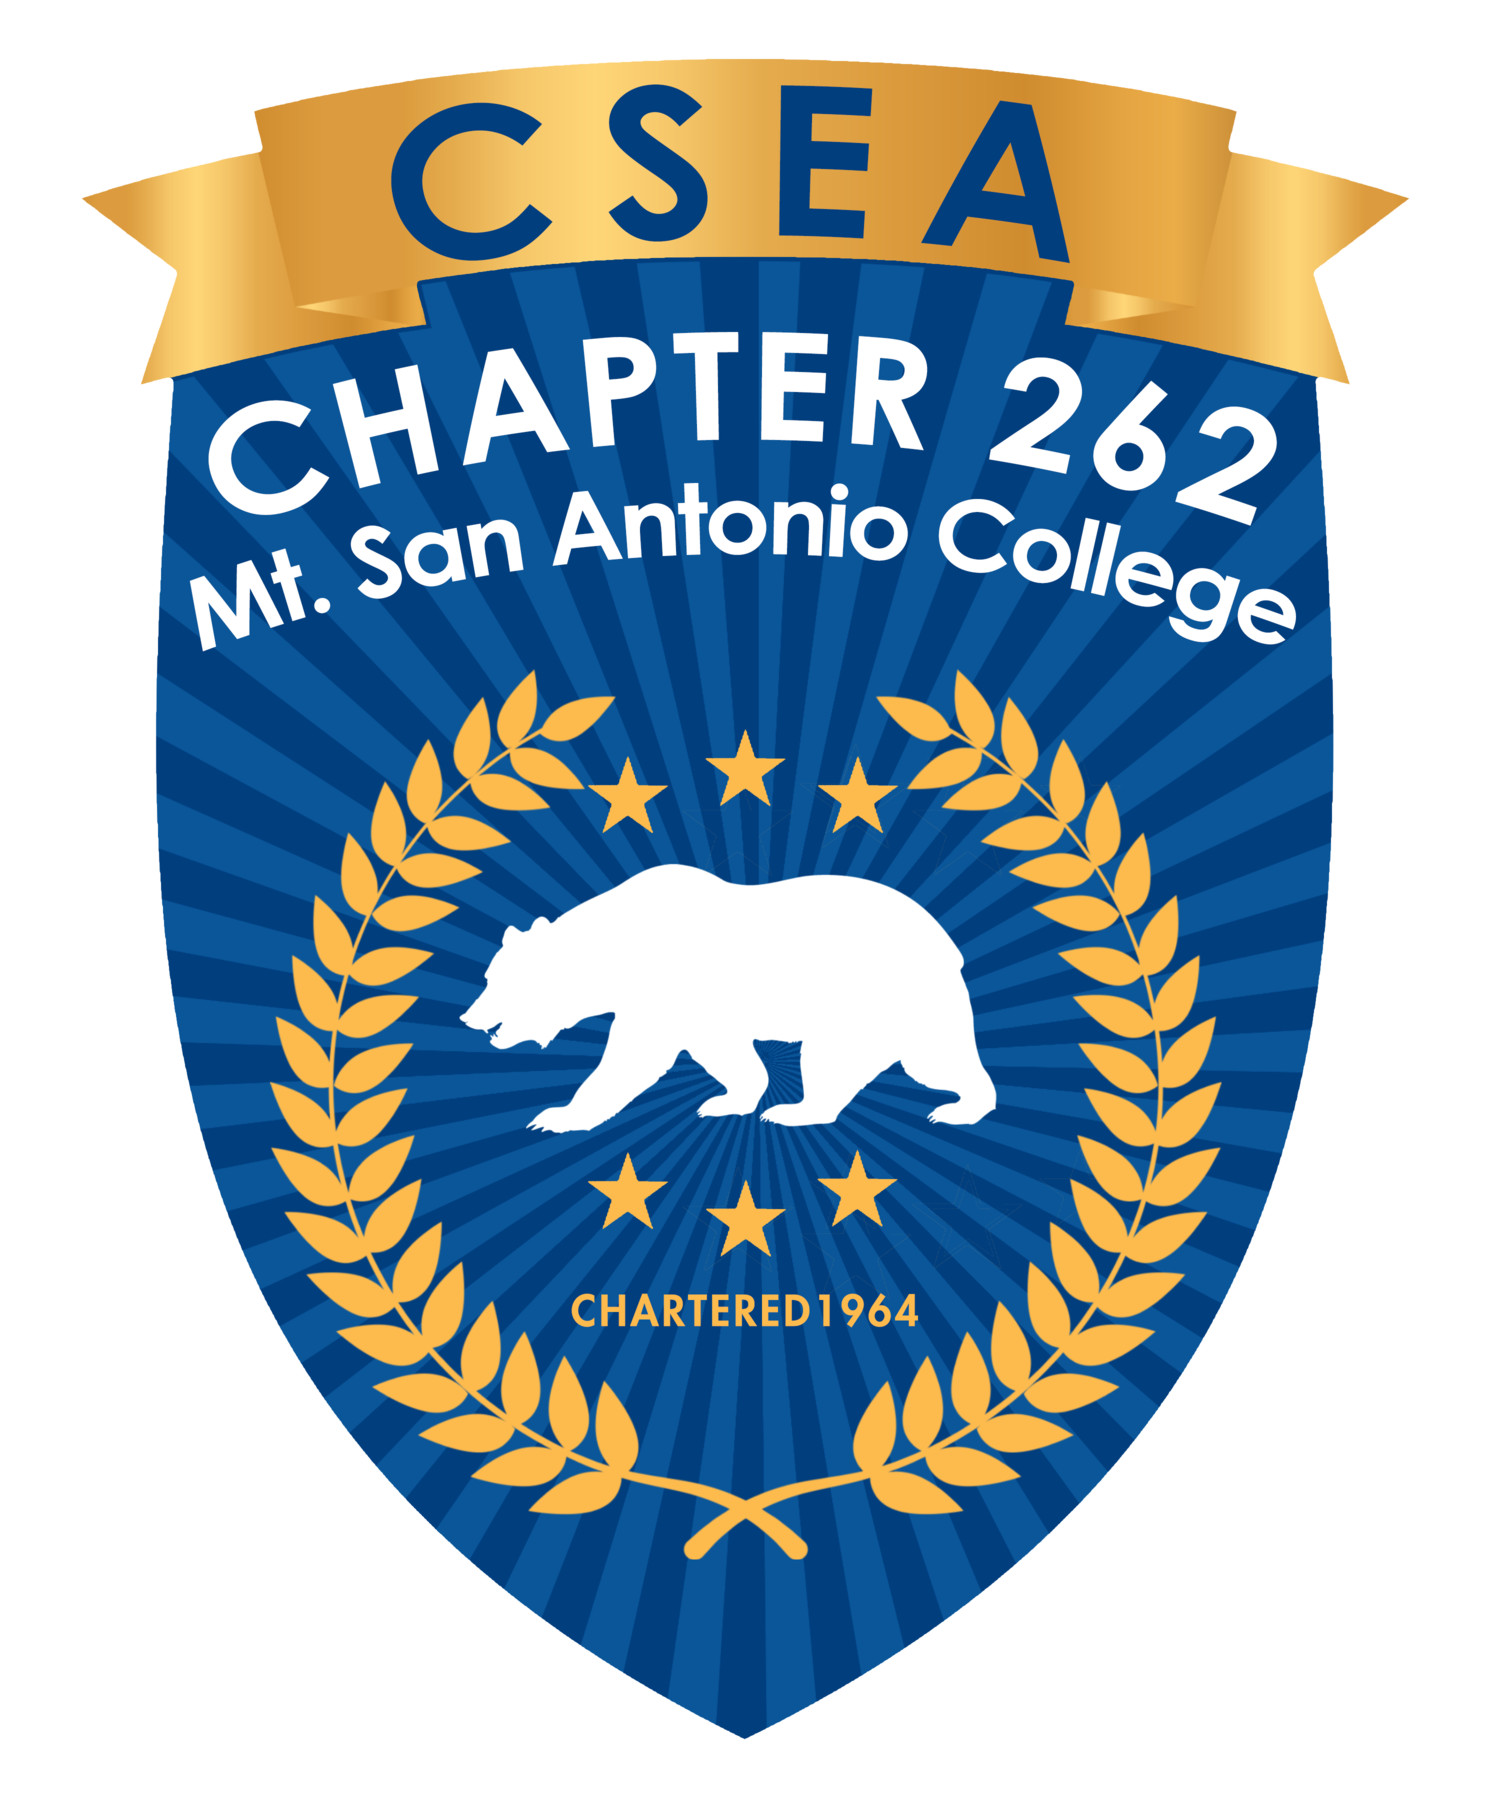 CSEA Chapter 262 — Mt. San Antonio College